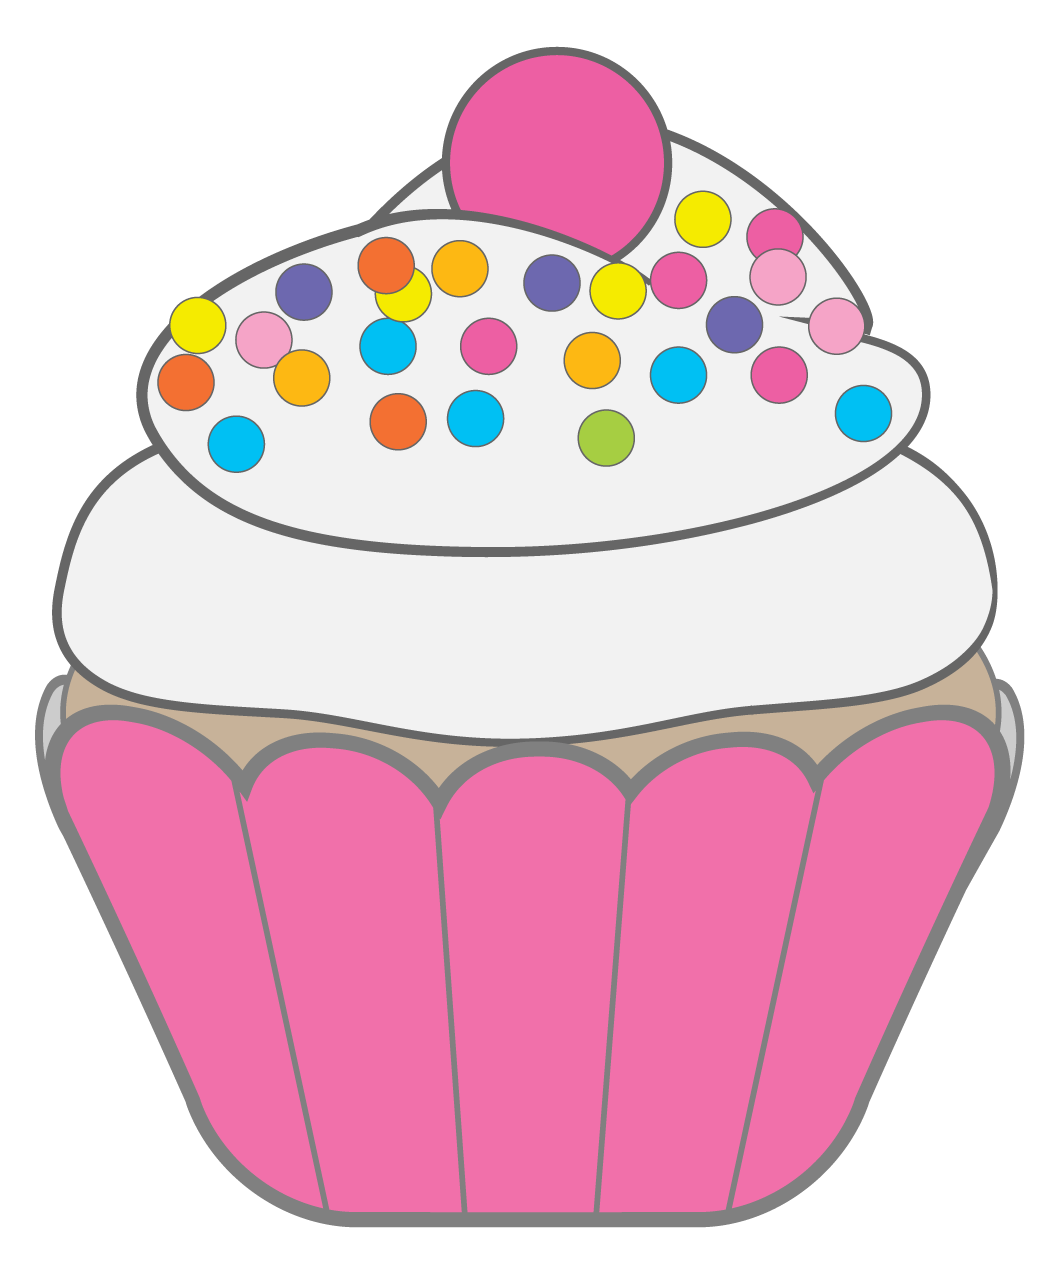 5 Images of Cupcake With Candle Clip Art Printables